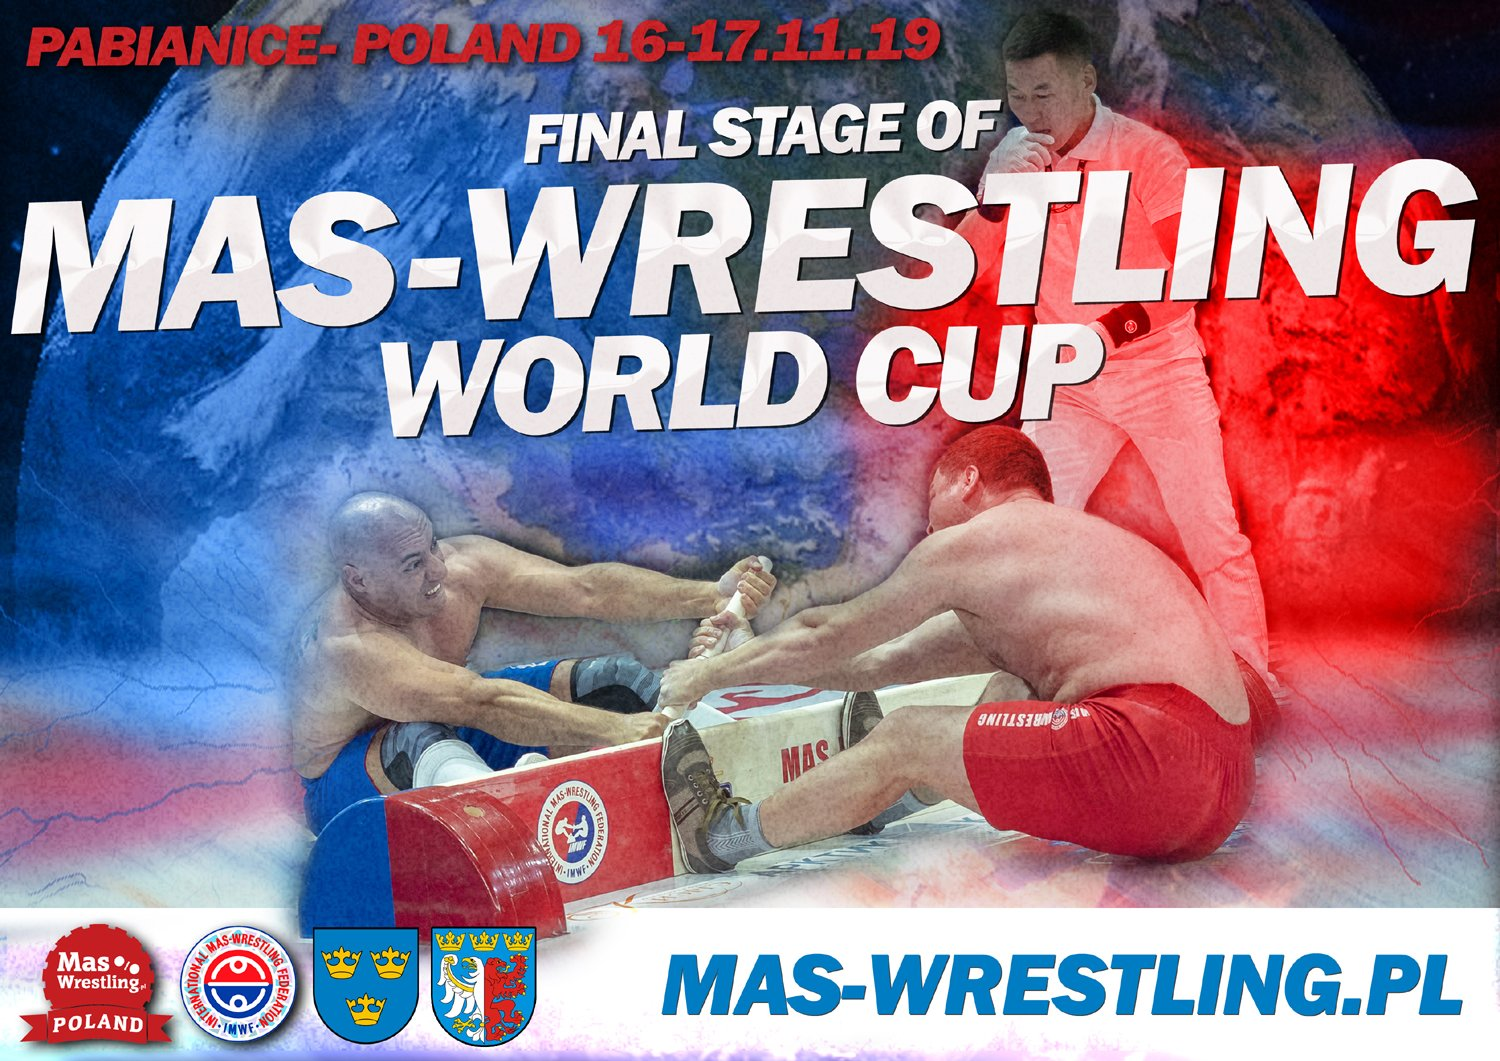 Mas-Wrestling World Cup 2019: the Final Stage.